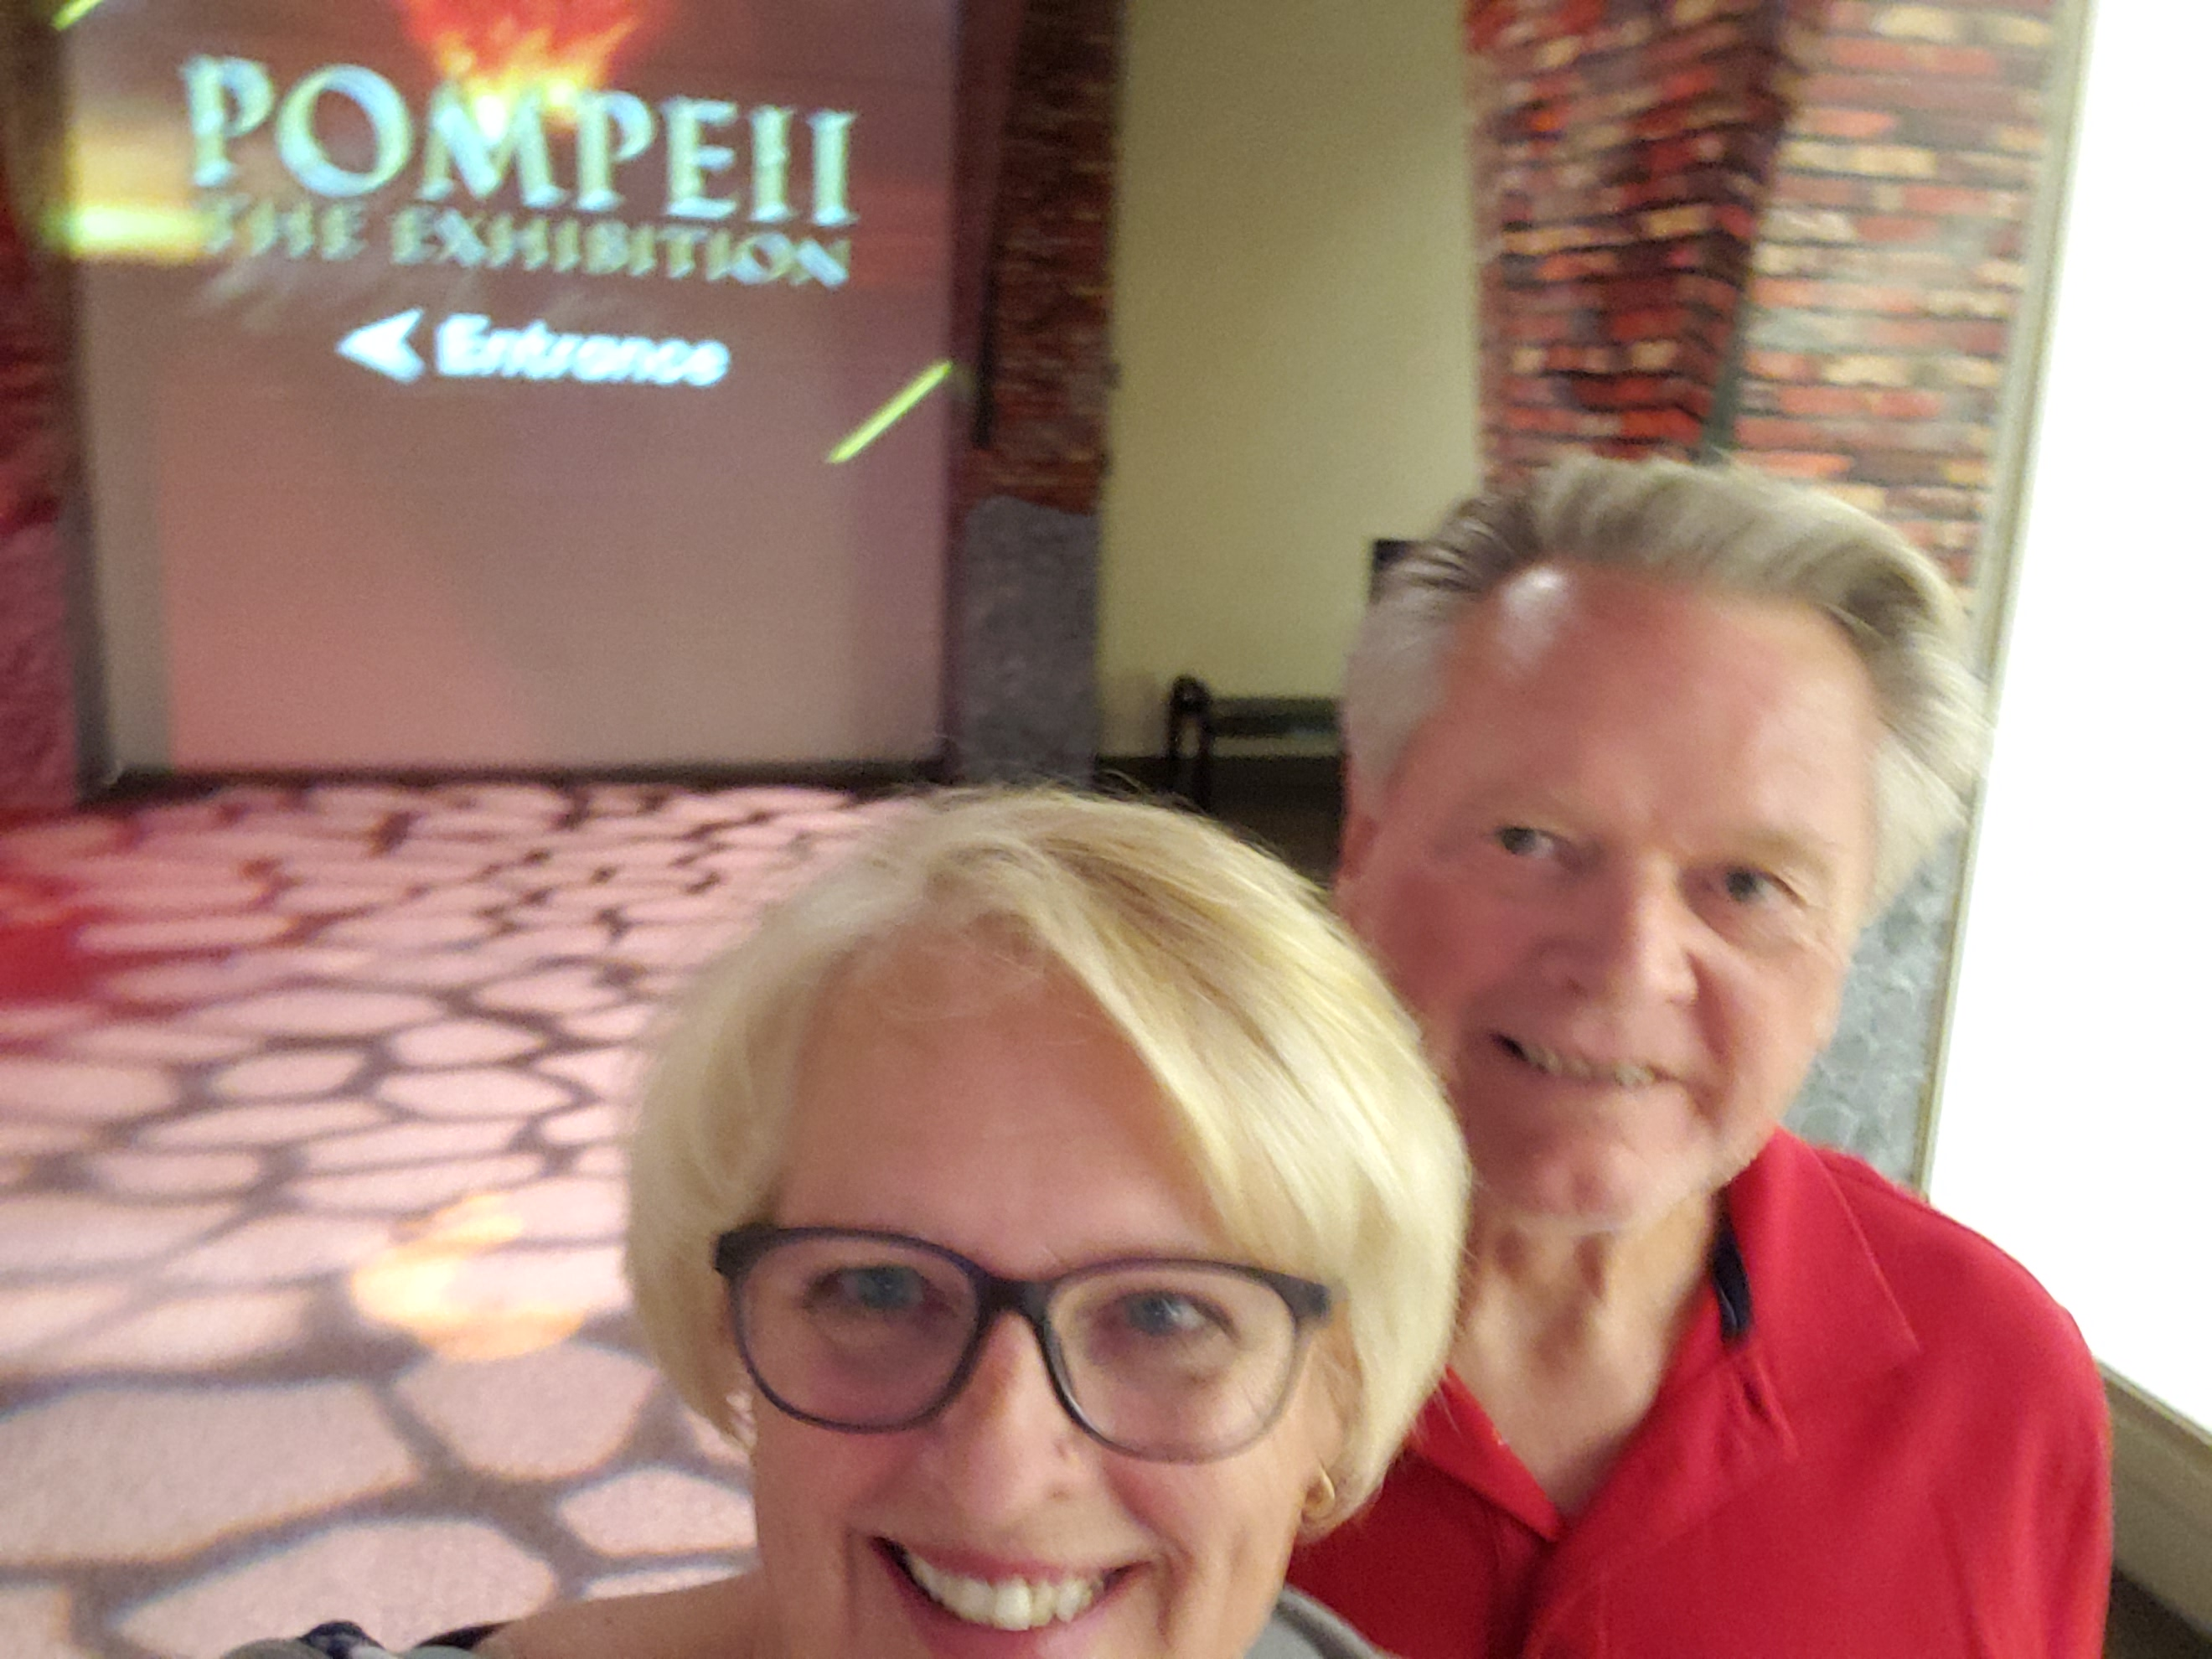 Mondays with Morie–Episode 4–Pompeii Exhibition